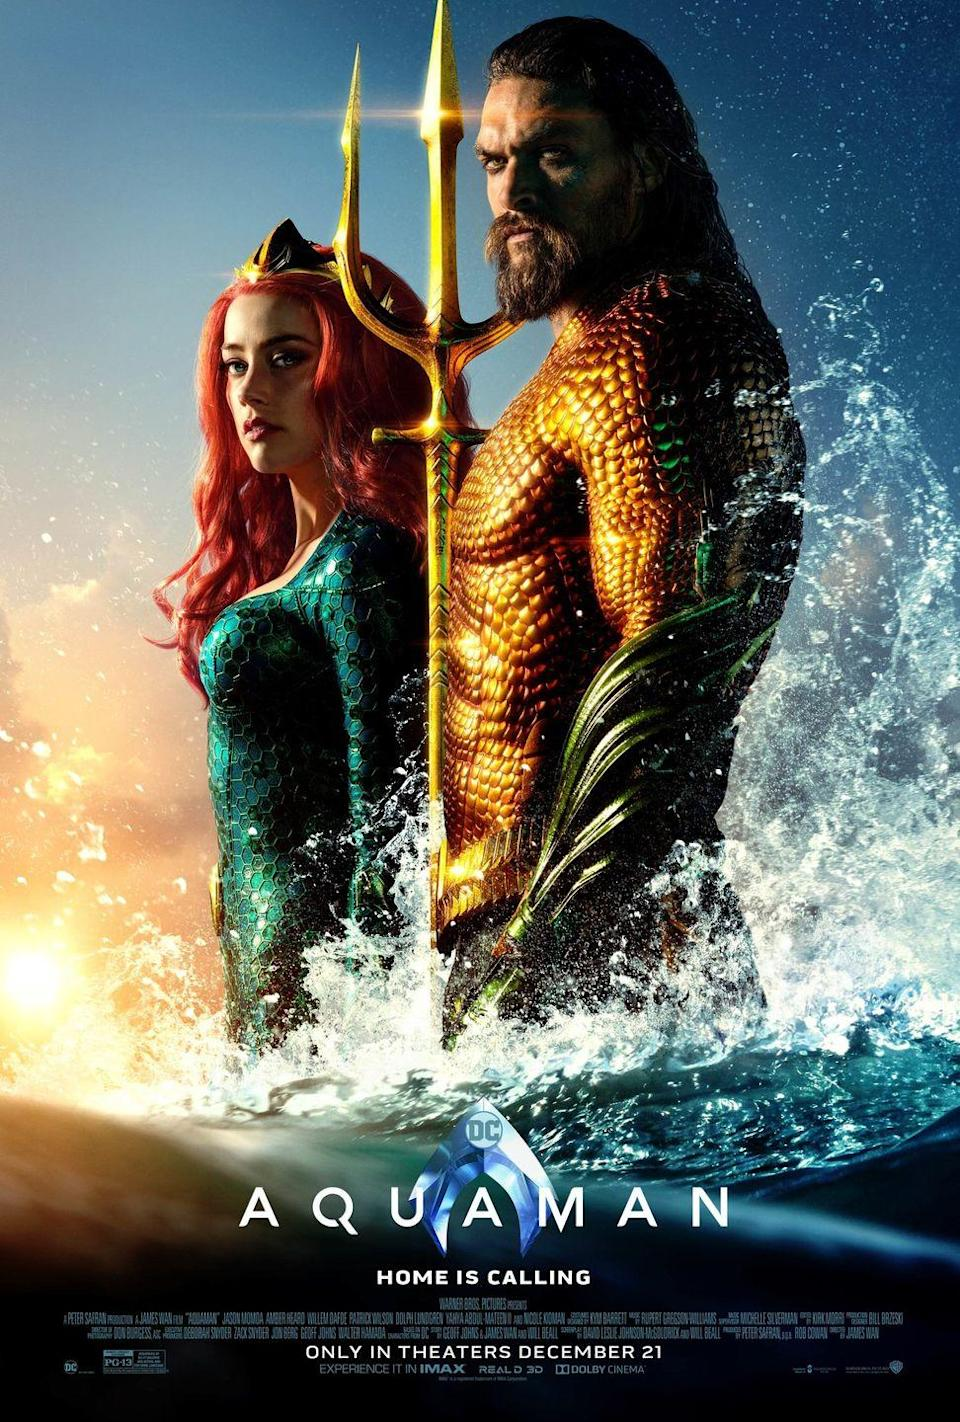 <p>After all the ups and downs (mostly downs) of the modern DC movie franchise, <em>Aquaman</em> had a lot working against it. Even without the context of the disastrous DC Extended Universe, it would have been hard to make the case for an Aquaman movie. Aquaman as a character is historically not cool. Who wants to see some dude ride around on a dolphin? Only Jason Momoa is badass enough to erase all preconceived notions of the character. This is a hard-drinking, blue-collar, <em>Deadliest Catch</em> of a man. And even though this film is baffling and overwrought, at least it's still a lot of fun—as long as you can ignore the CGI hair and general plot.</p>